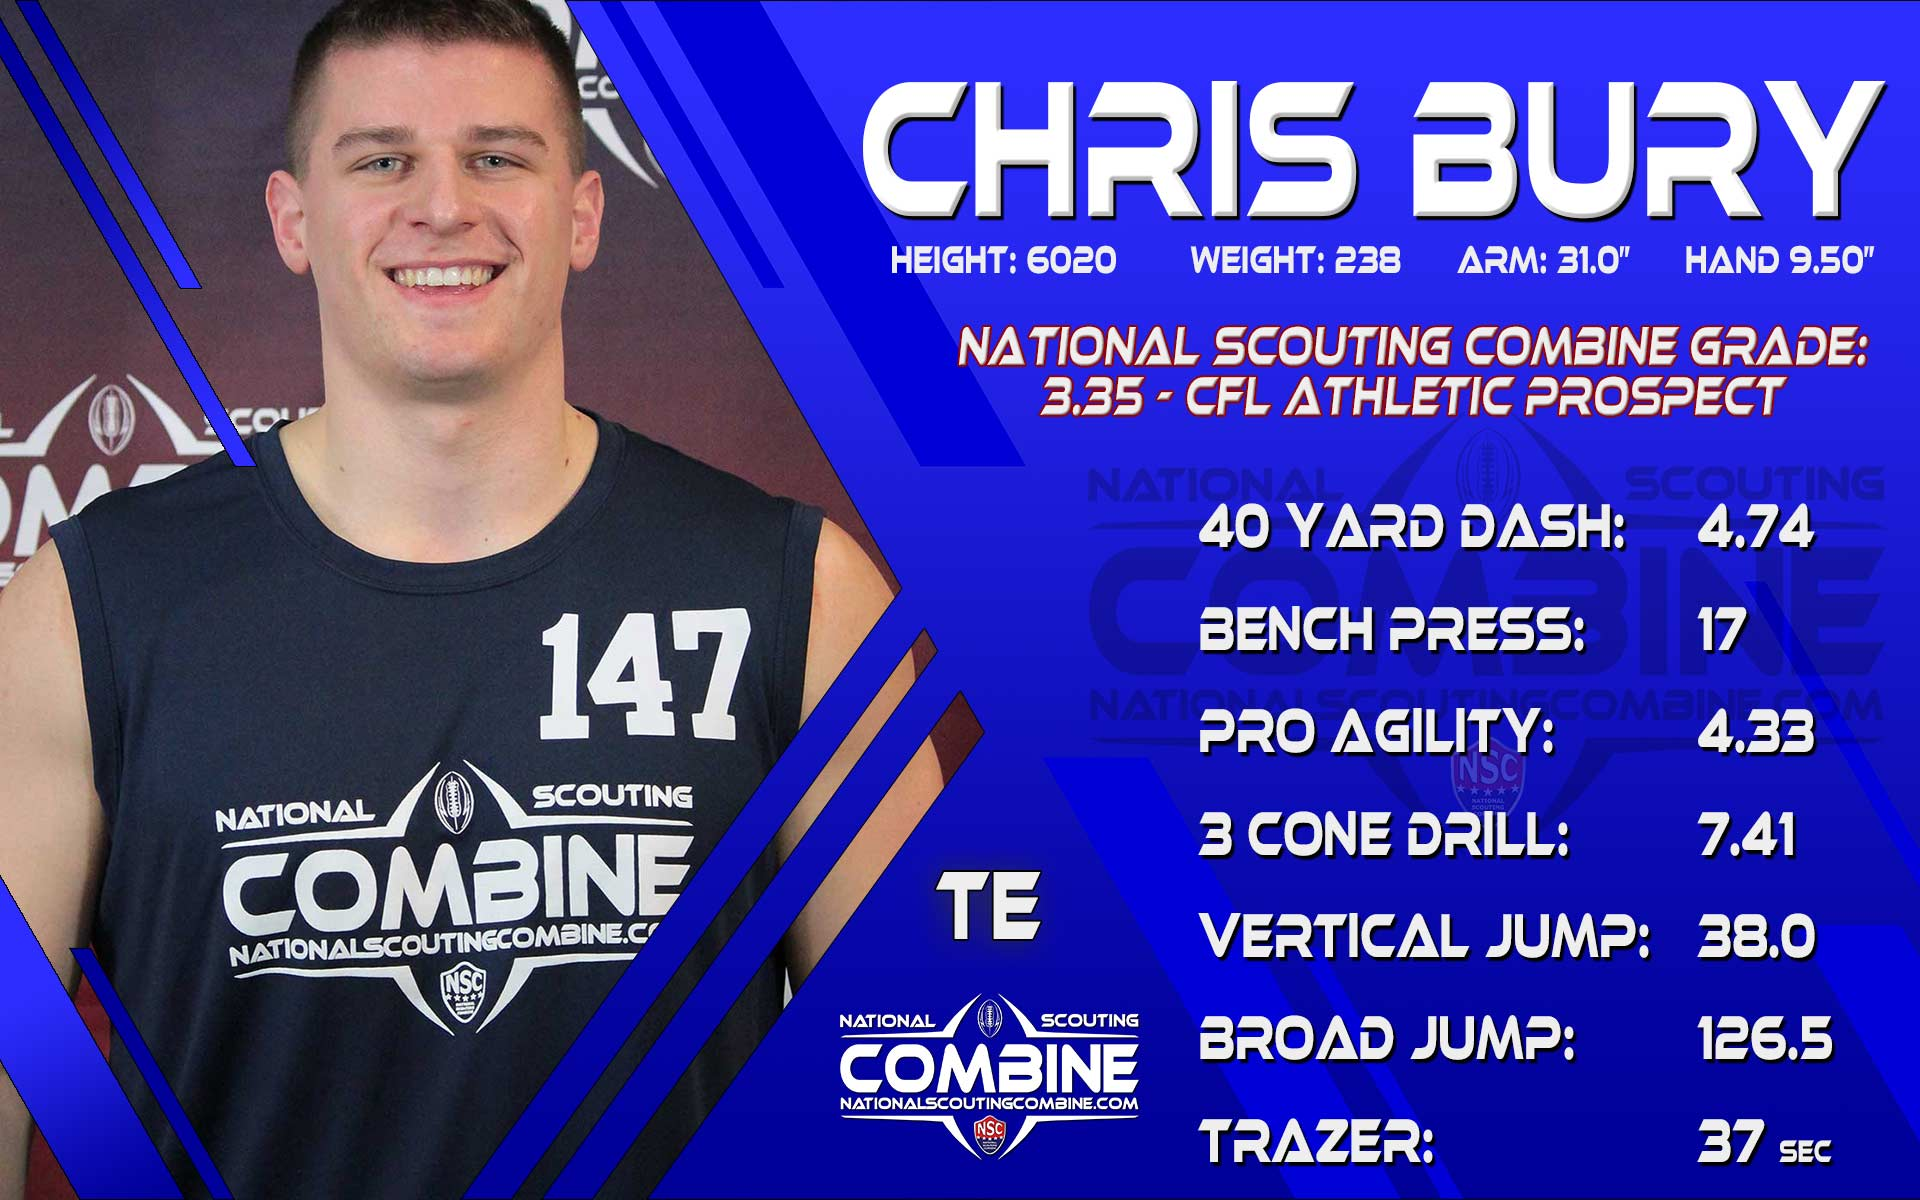 NSC SCOUTING REPORT: CHIRSTOPHER BURY